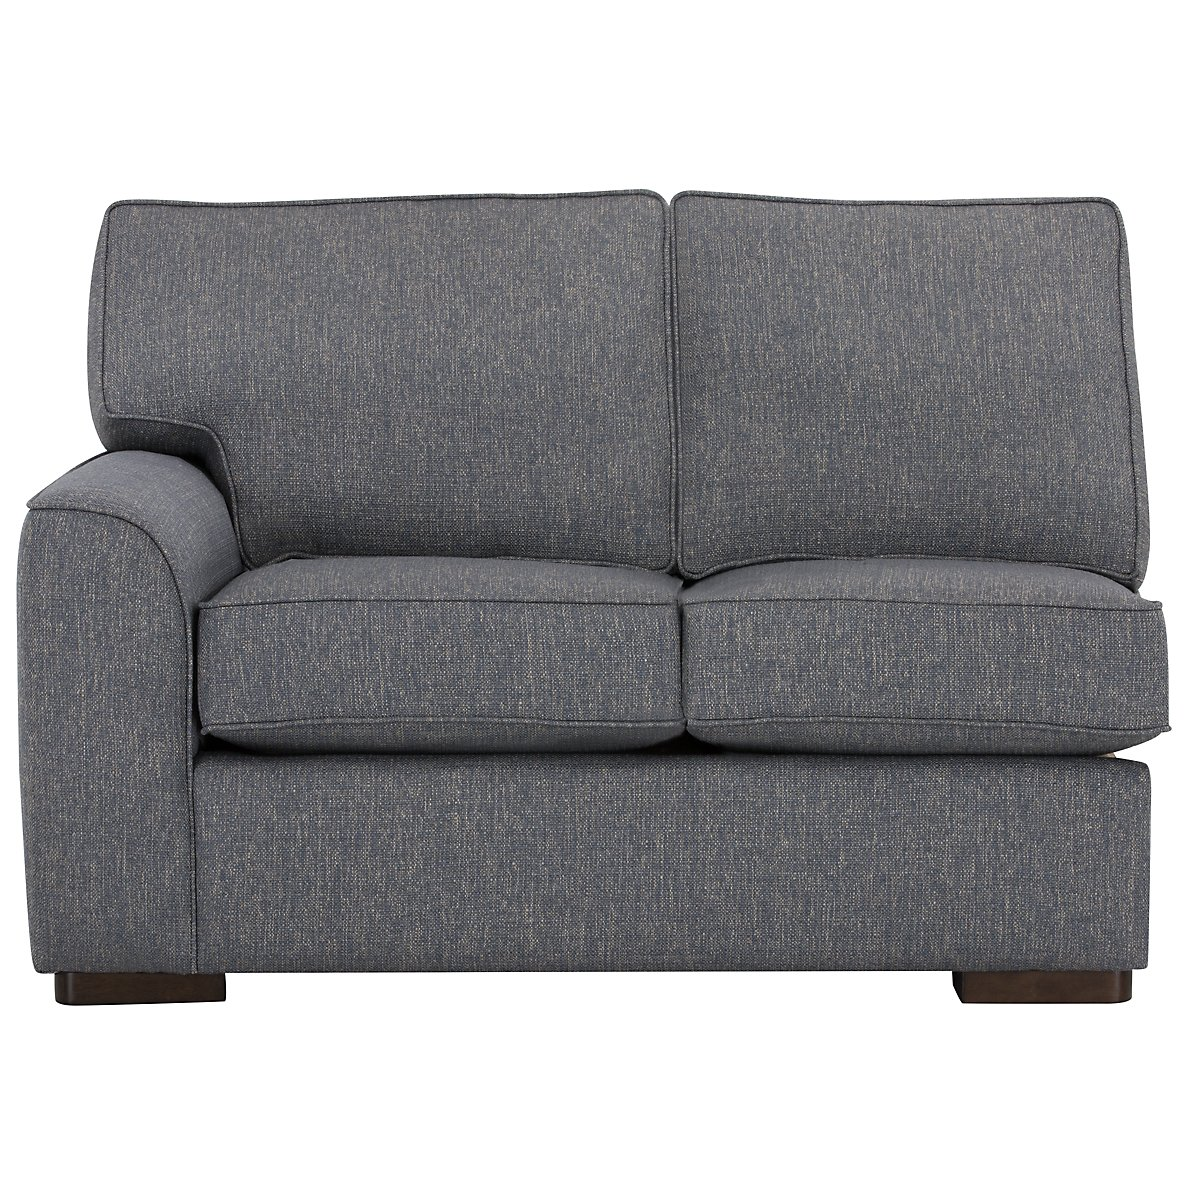 Free Furniture Austin: City Furniture: Austin Blue Fabric Right Chaise Sectional